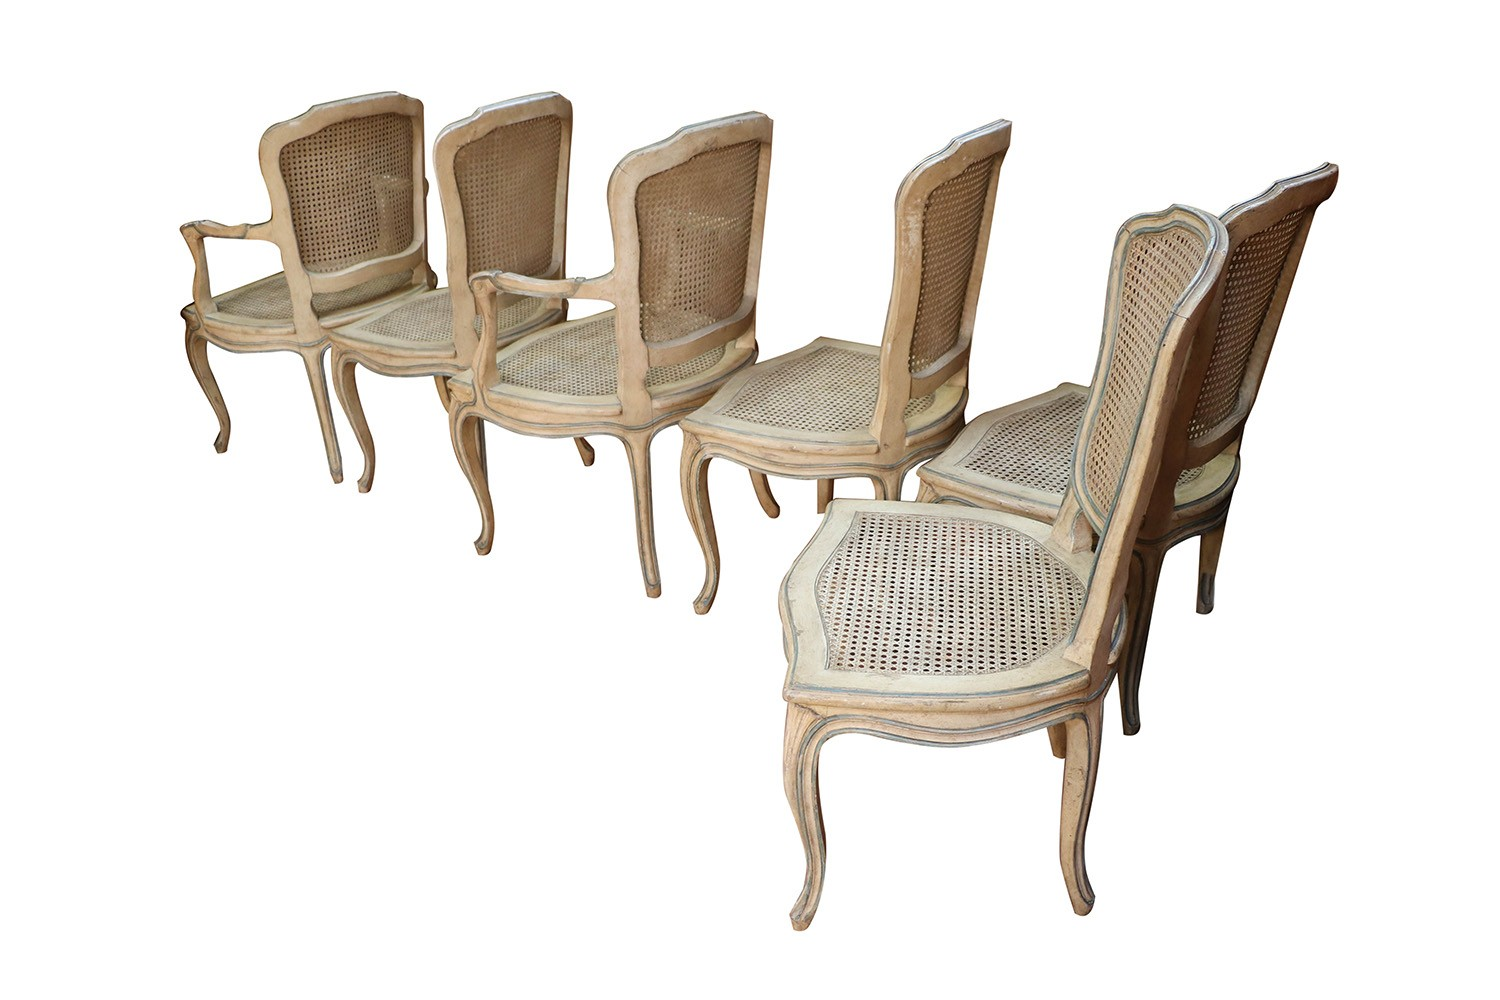 Six French Painted Caned Rococo Style Dining Chairs